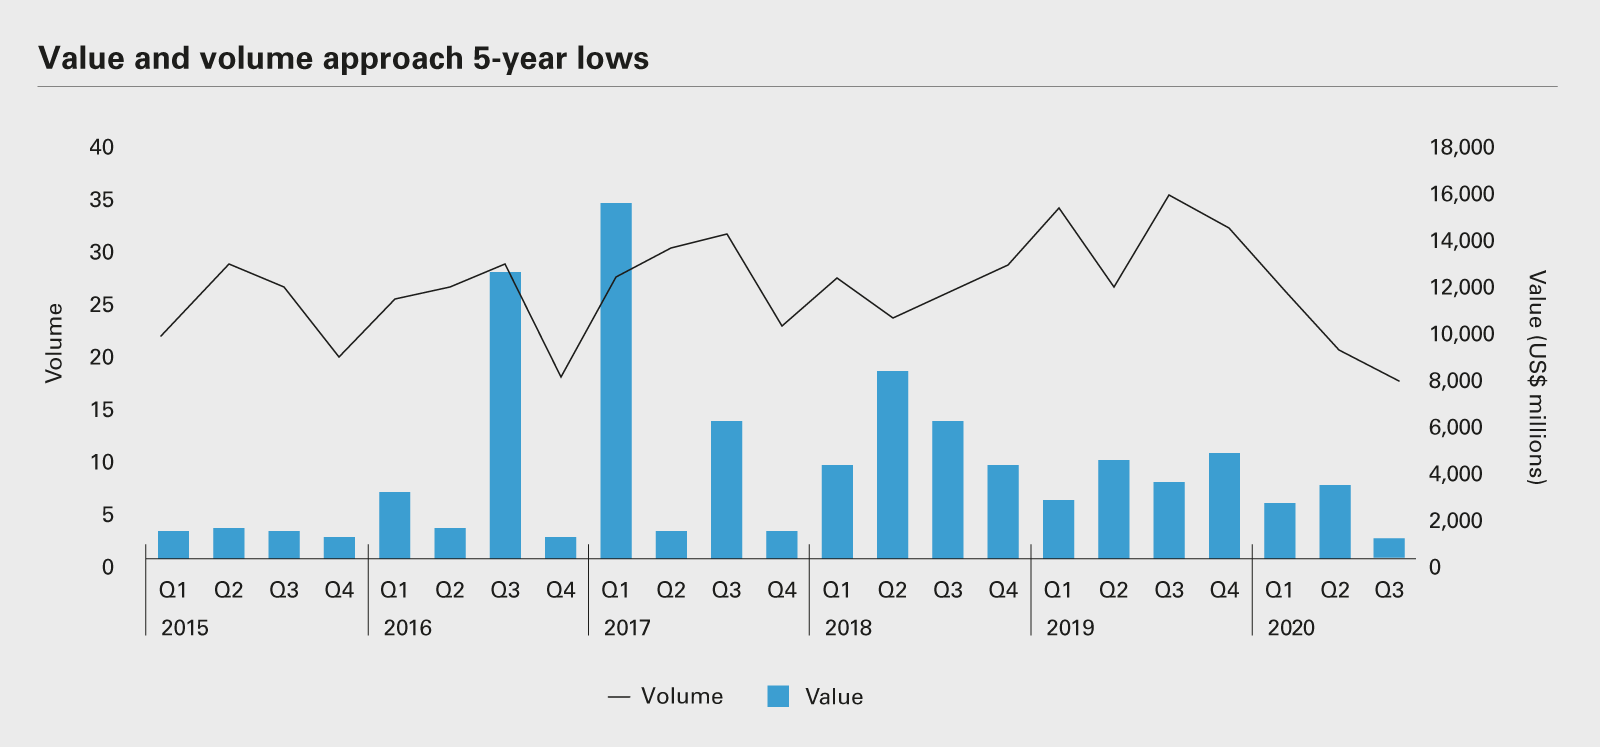 Value and volume approach 5-year lows (PDF)